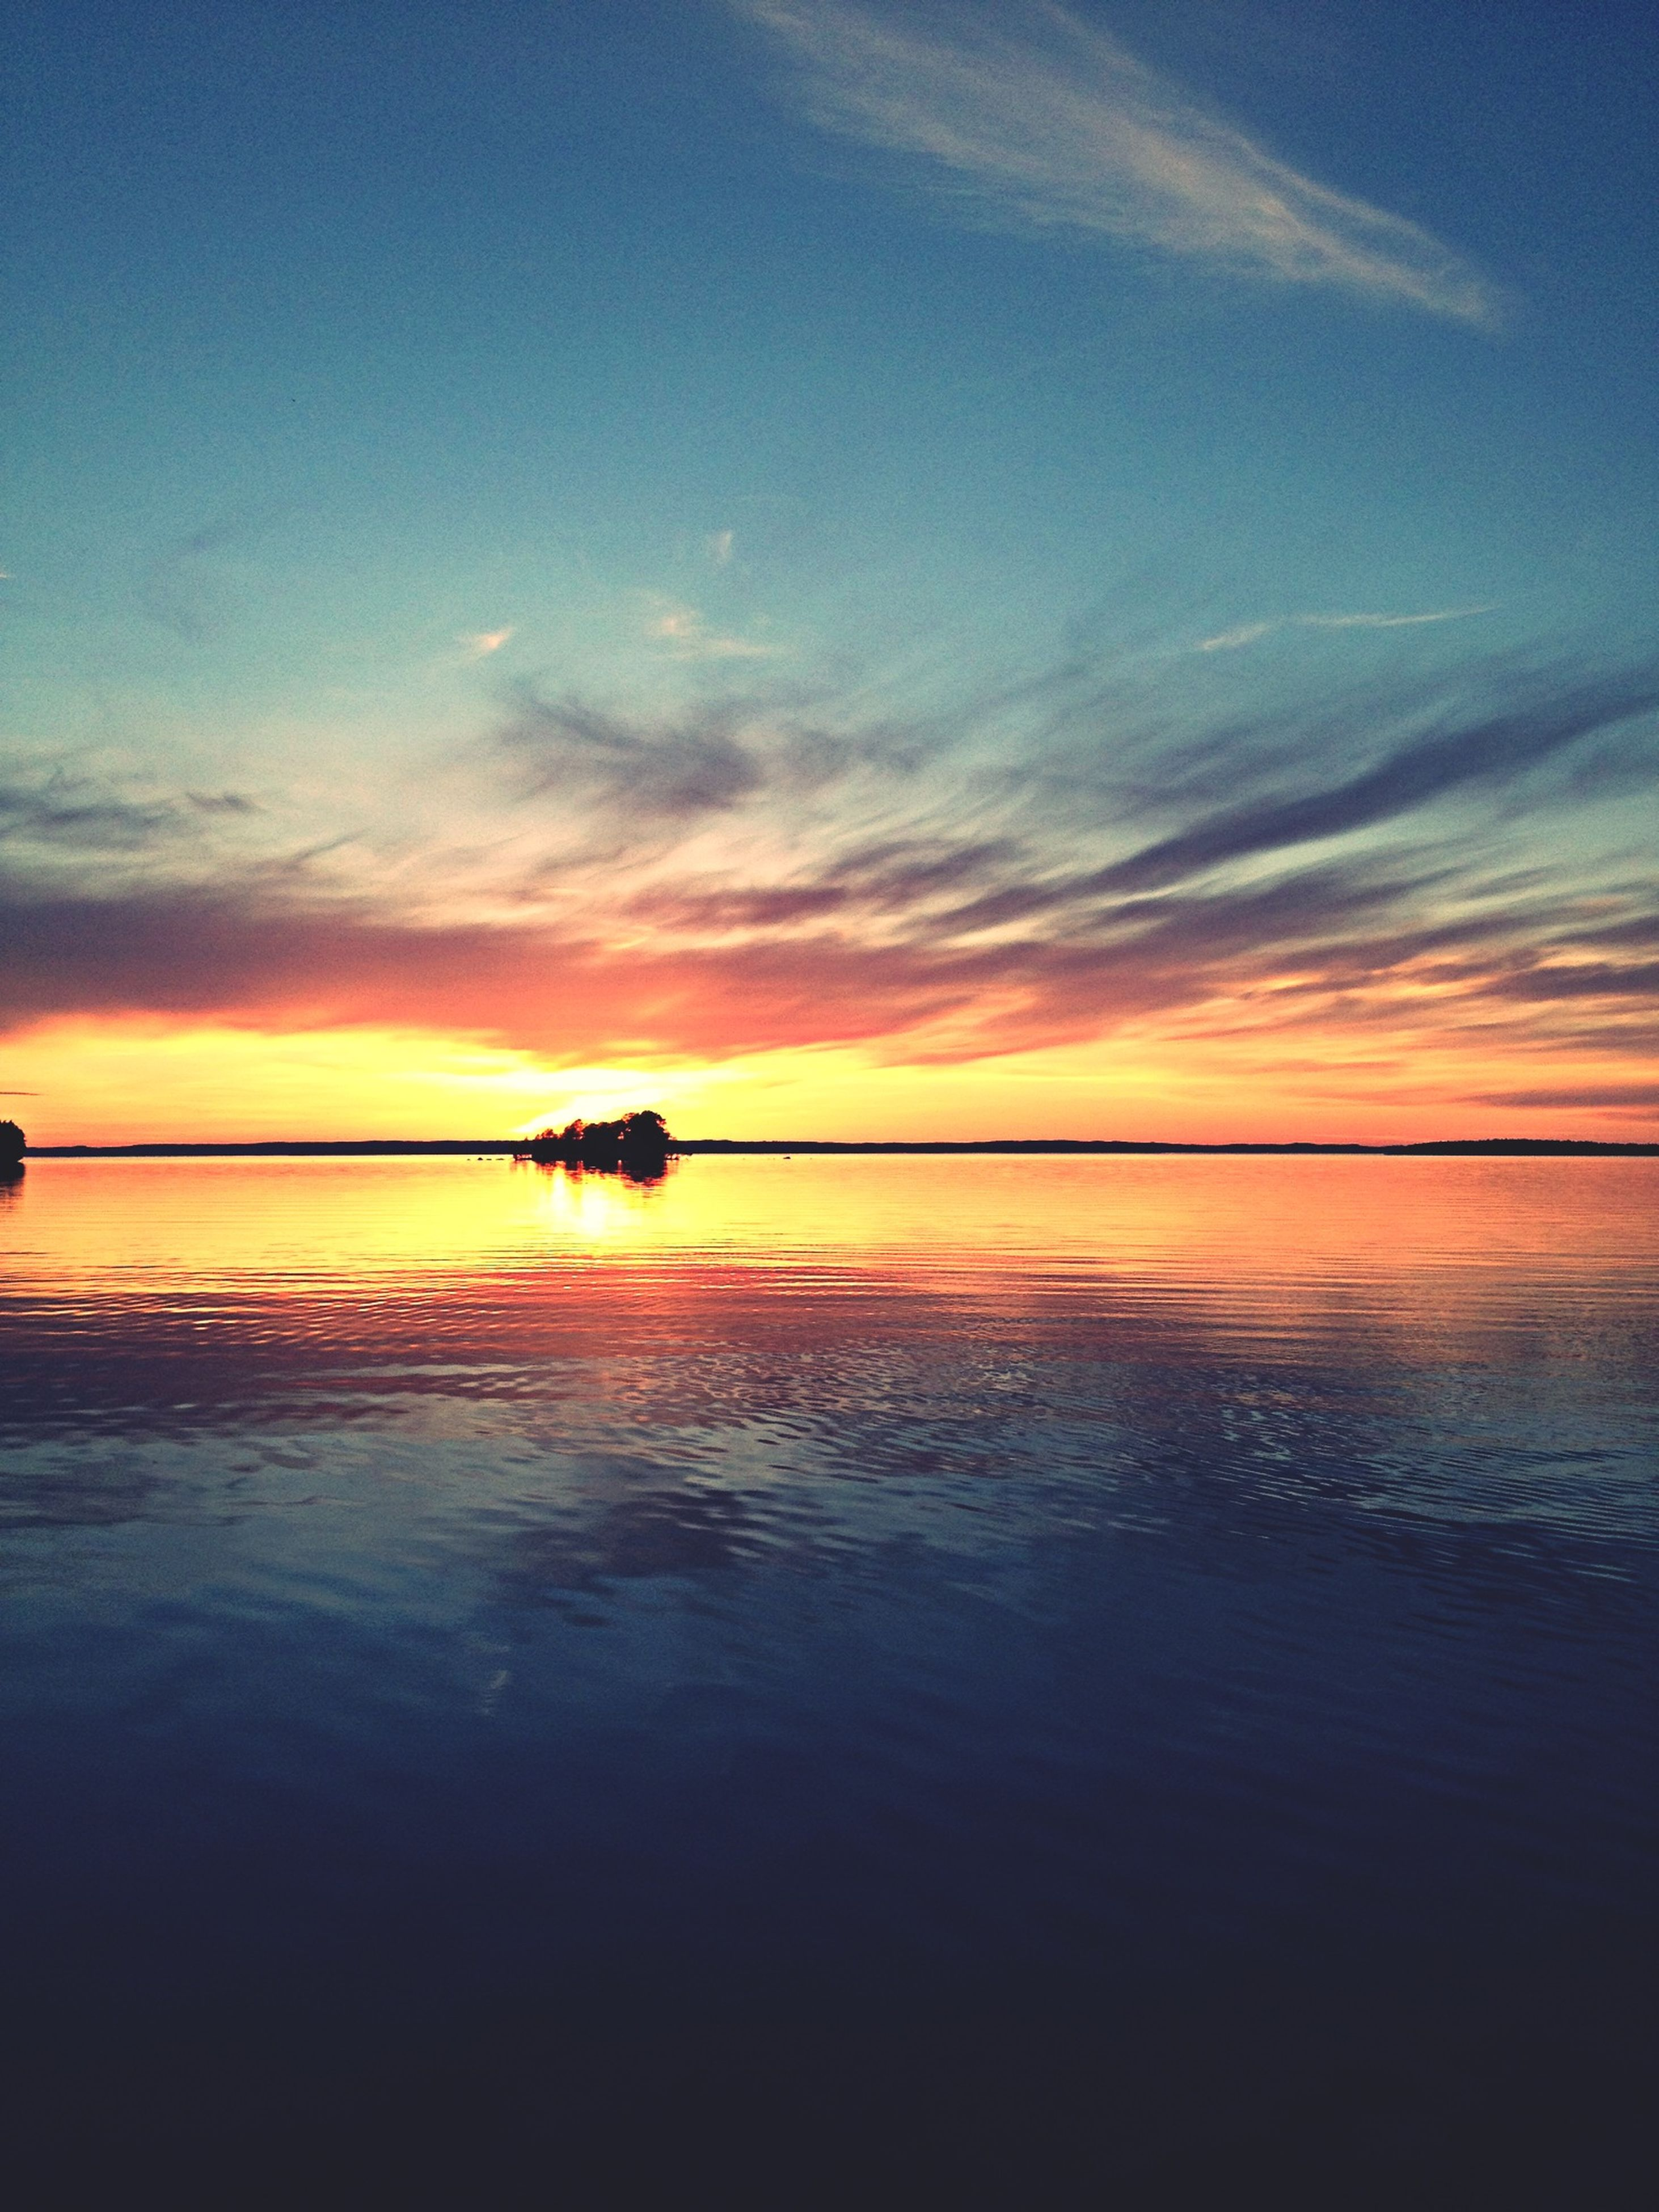 sunset, water, sea, horizon over water, sky, scenics, tranquil scene, tranquility, beauty in nature, orange color, reflection, cloud - sky, silhouette, nature, idyllic, beach, cloud, nautical vessel, waterfront, shore